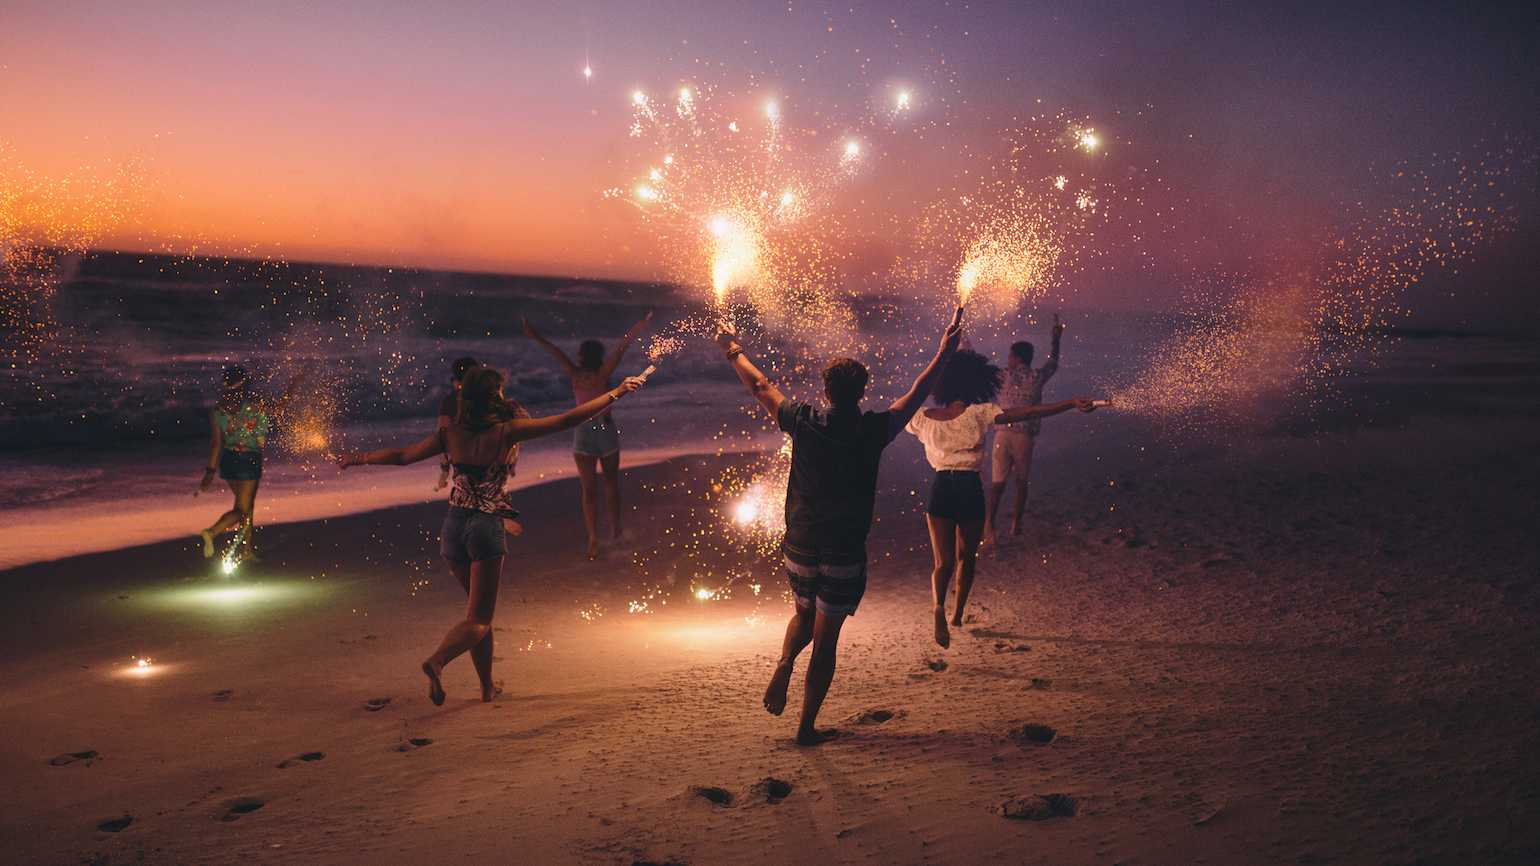 Celebrate the sparkle of your life this 4th of July